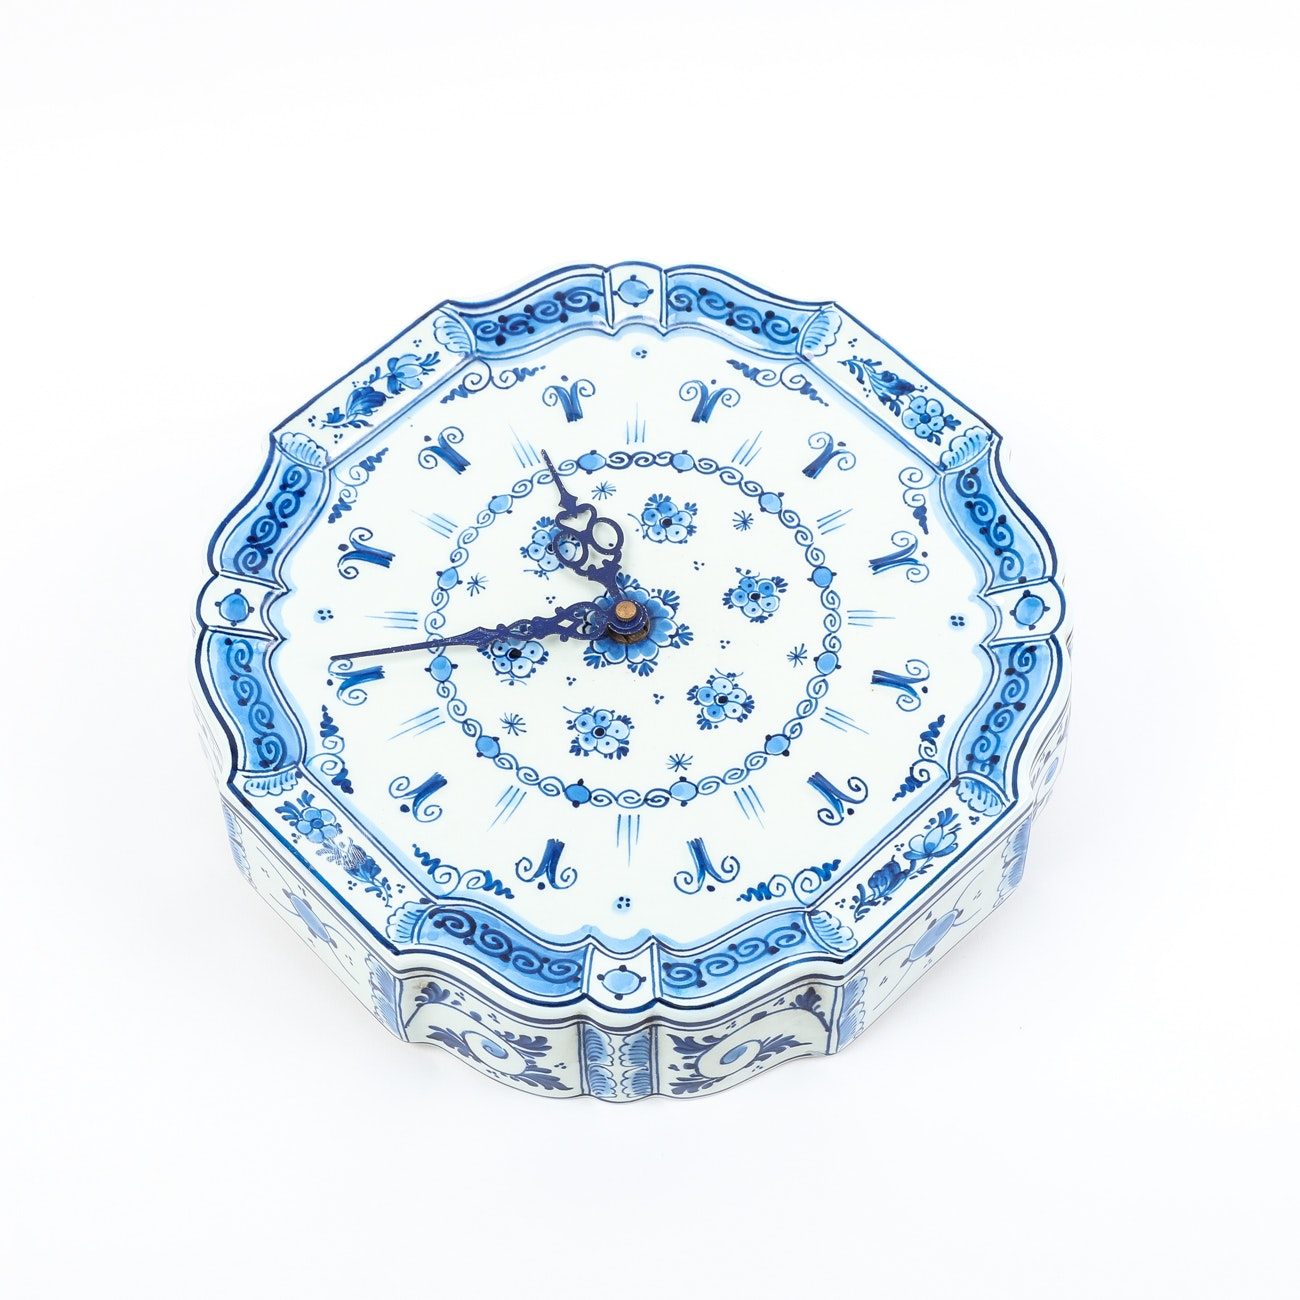 Delft Blue Battery Operated Wall Clock